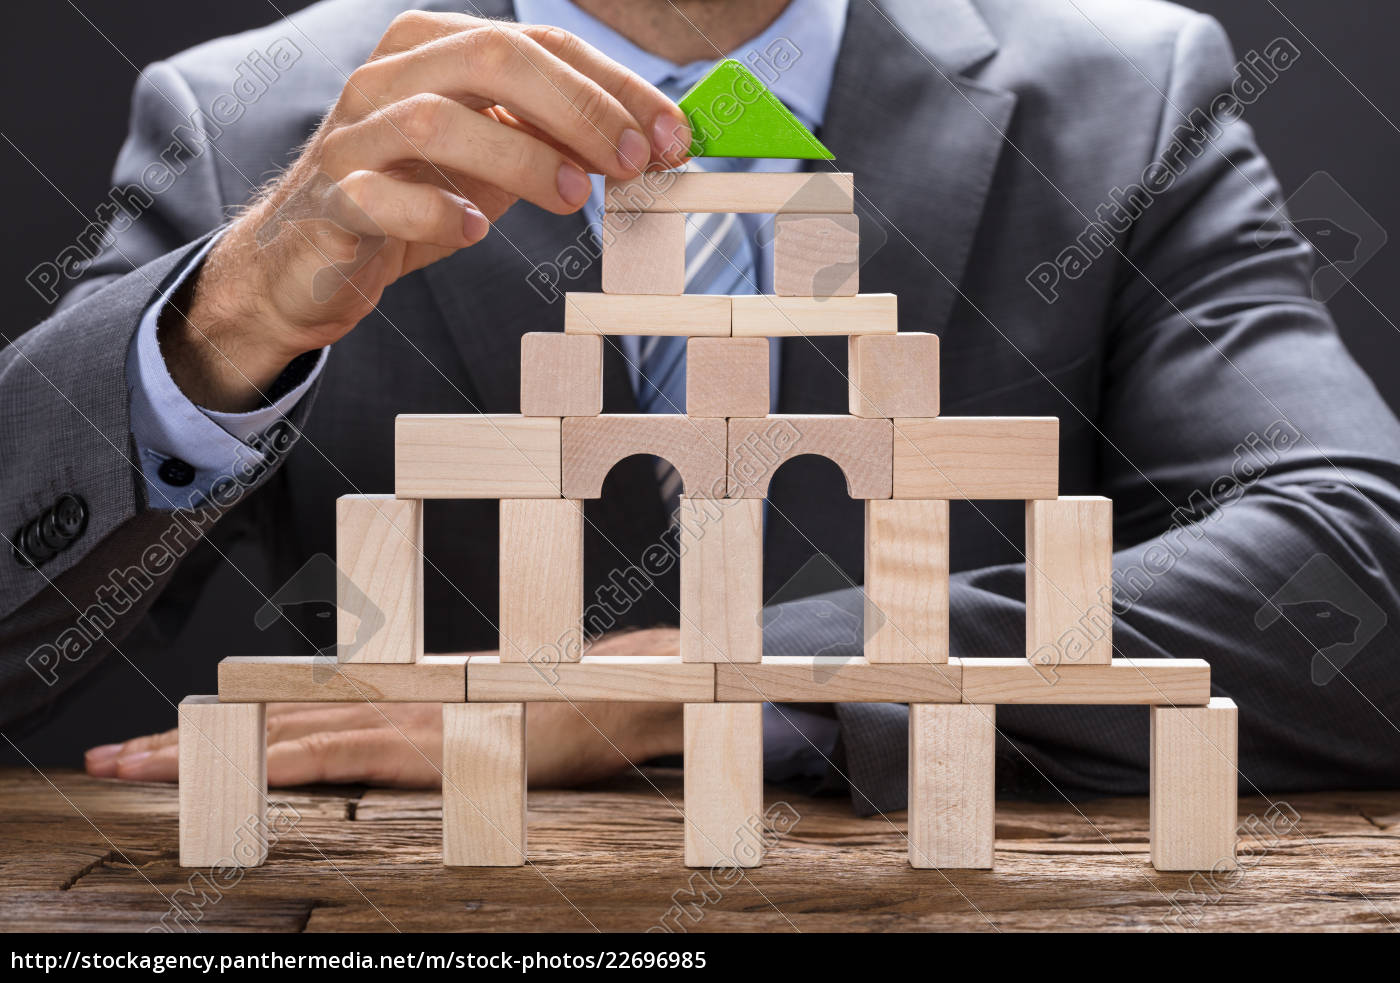 businessman, making, building, with, wooden, blocks - 22696985